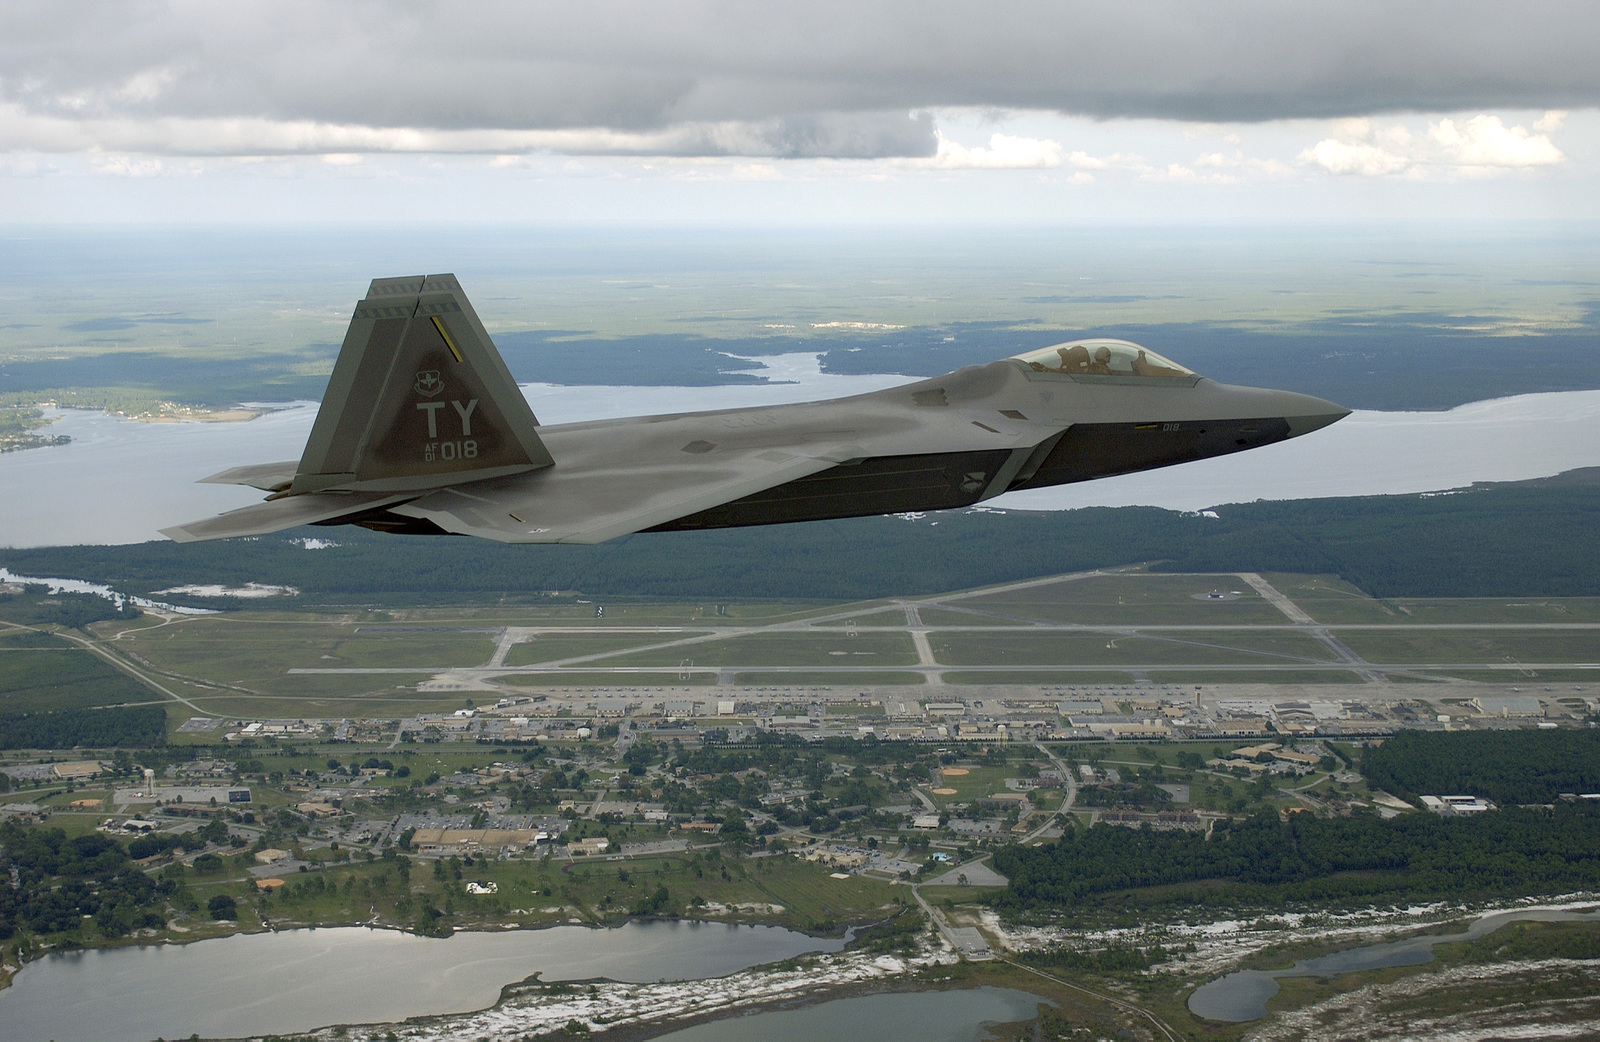 """US Air Force (USAF) Lieutenant Colonel (LTC) Jeffrey """"Cobra"""" Harrigian, Commander, 43rd Fighter Squadron (FS), 325th Fighter Wing (FW), Air Education and Training Command (AETC), Tyndall Air Force Base (AFB), Florida (FL), flies Raptor 01-018, over its new home. This is the first of 48 new USAF F/A-22 Raptors assigned to Tyndall's 325th FW. The flight, took place September 26, 2003, is a major milestone and will now enable the 43rd FS to begin formally training pilots to fly this next-eration fighter. The F/A-22 combines stealth, supercruise, maneuverability and many other features enabling a first look, first shot, first kill capability that will provide continued air dominance for..."""